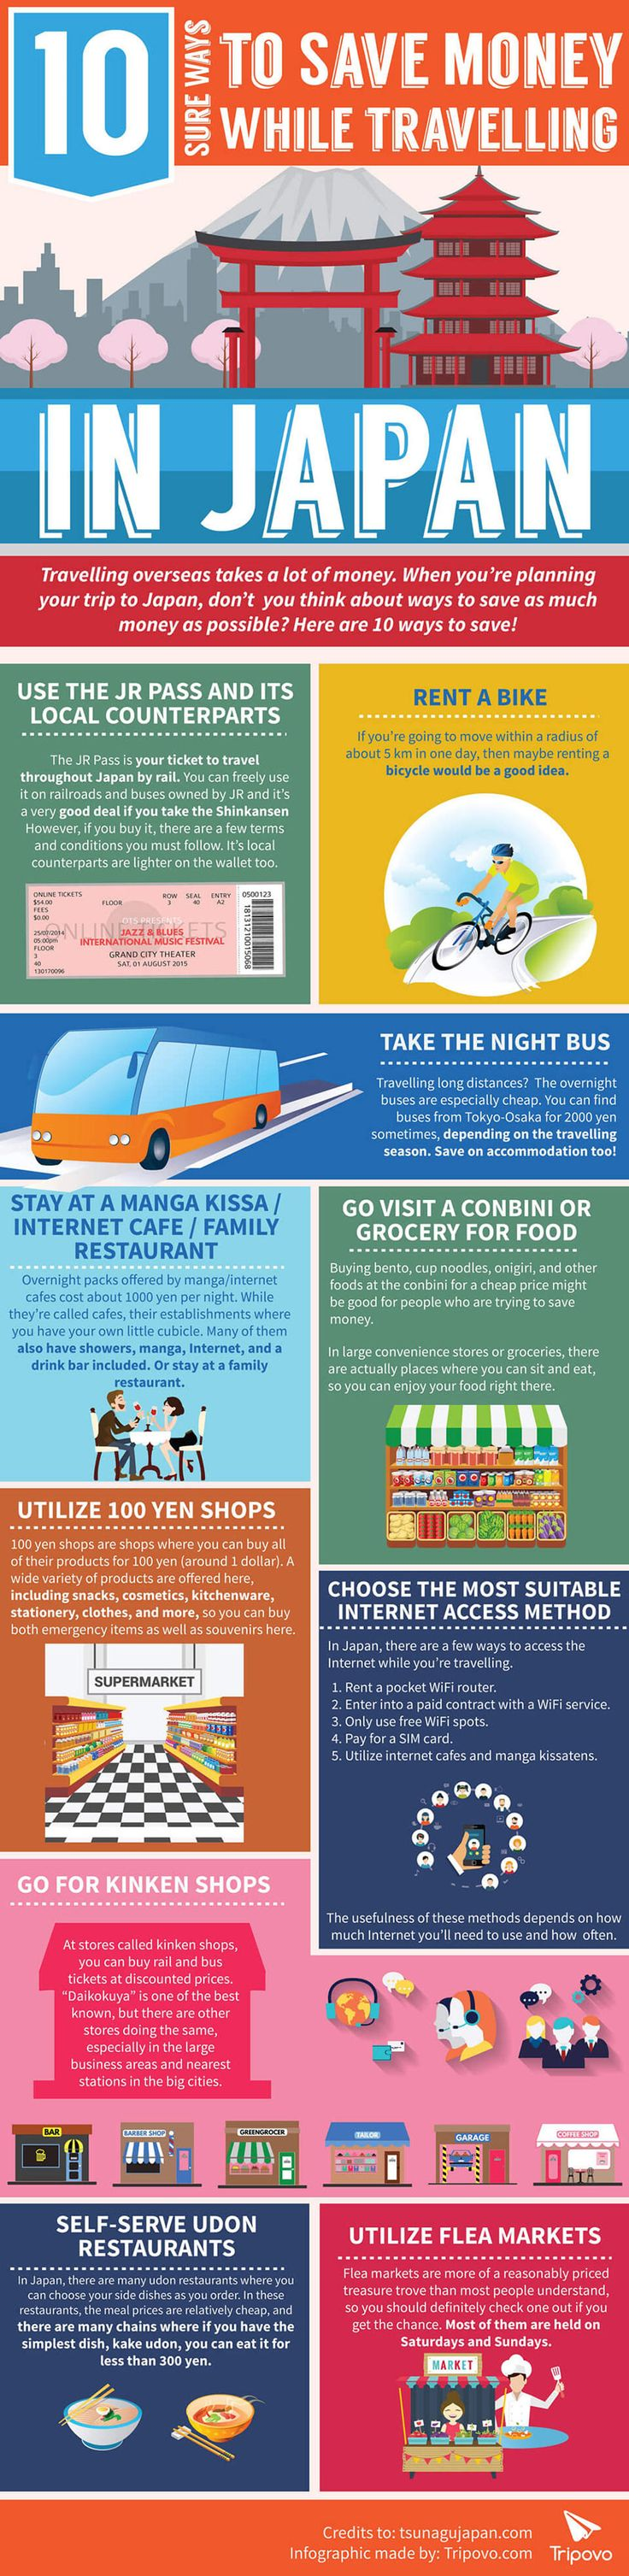 10 Sure Ways to Save Money While Traveling in Japan Travel Infographic http://fancytemplestore.com